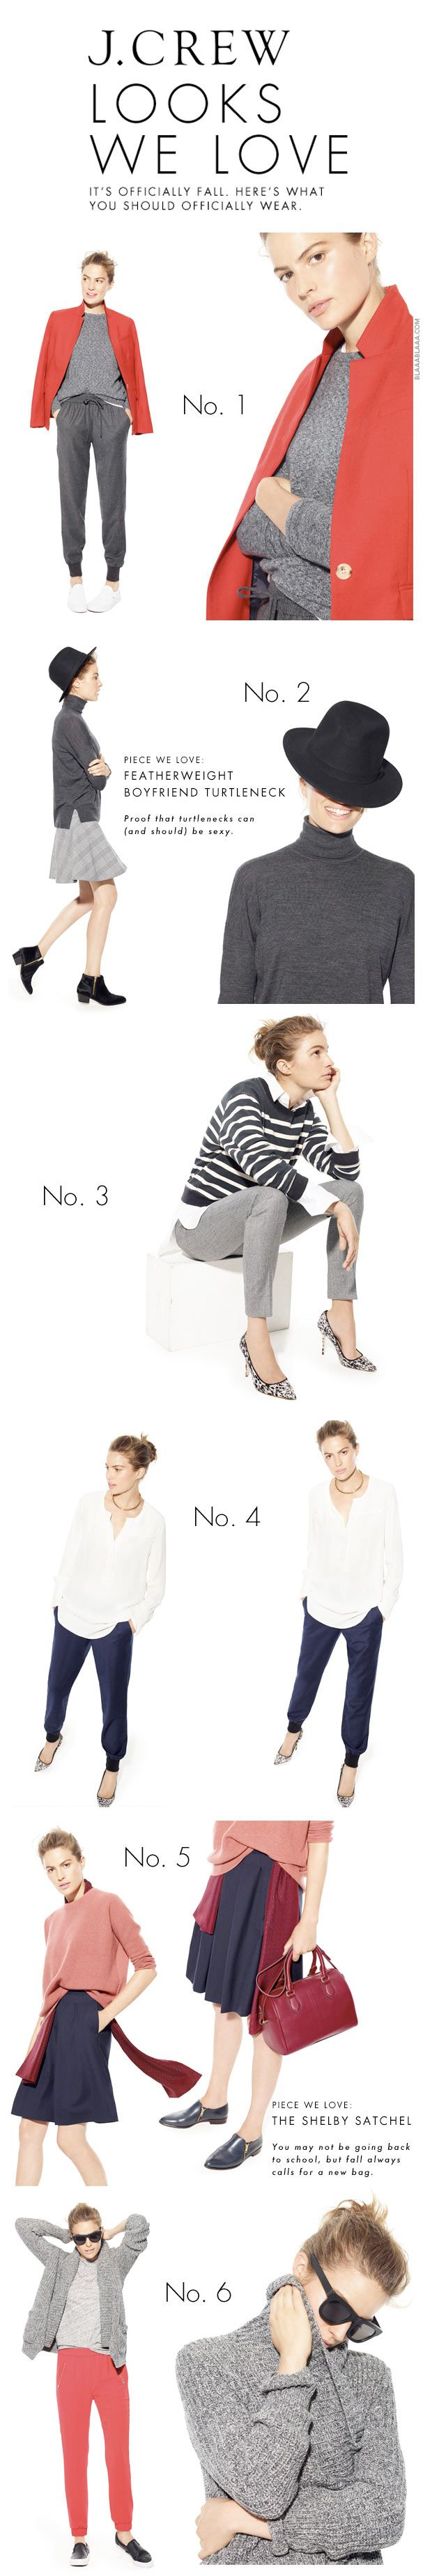 J.Crew Newsletter - Fall Trends Shop the Look